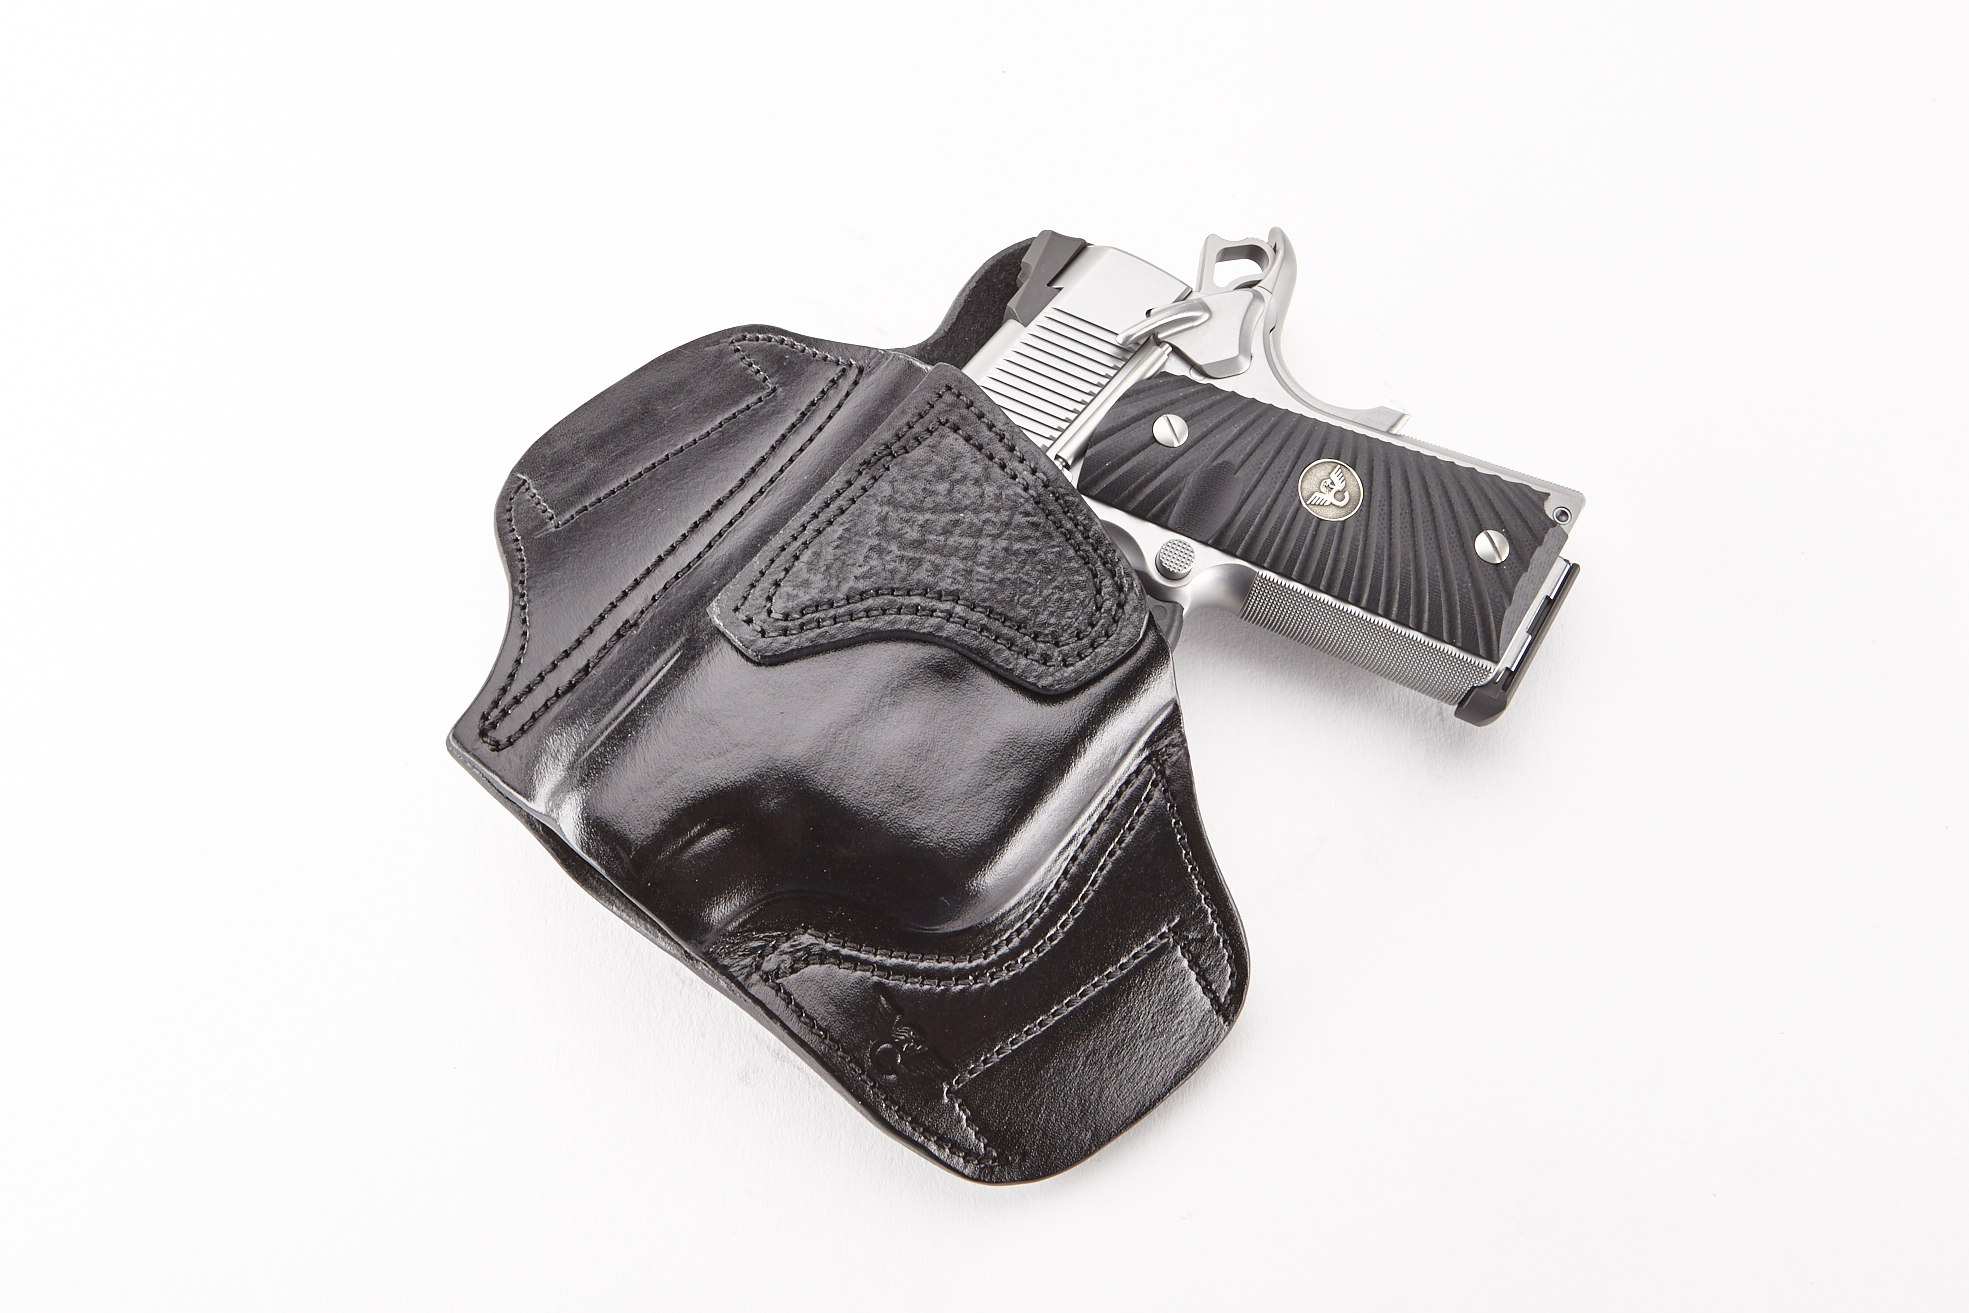 Lo-Profile II Holster | Compact 1911 with TLR-6 | Left-https